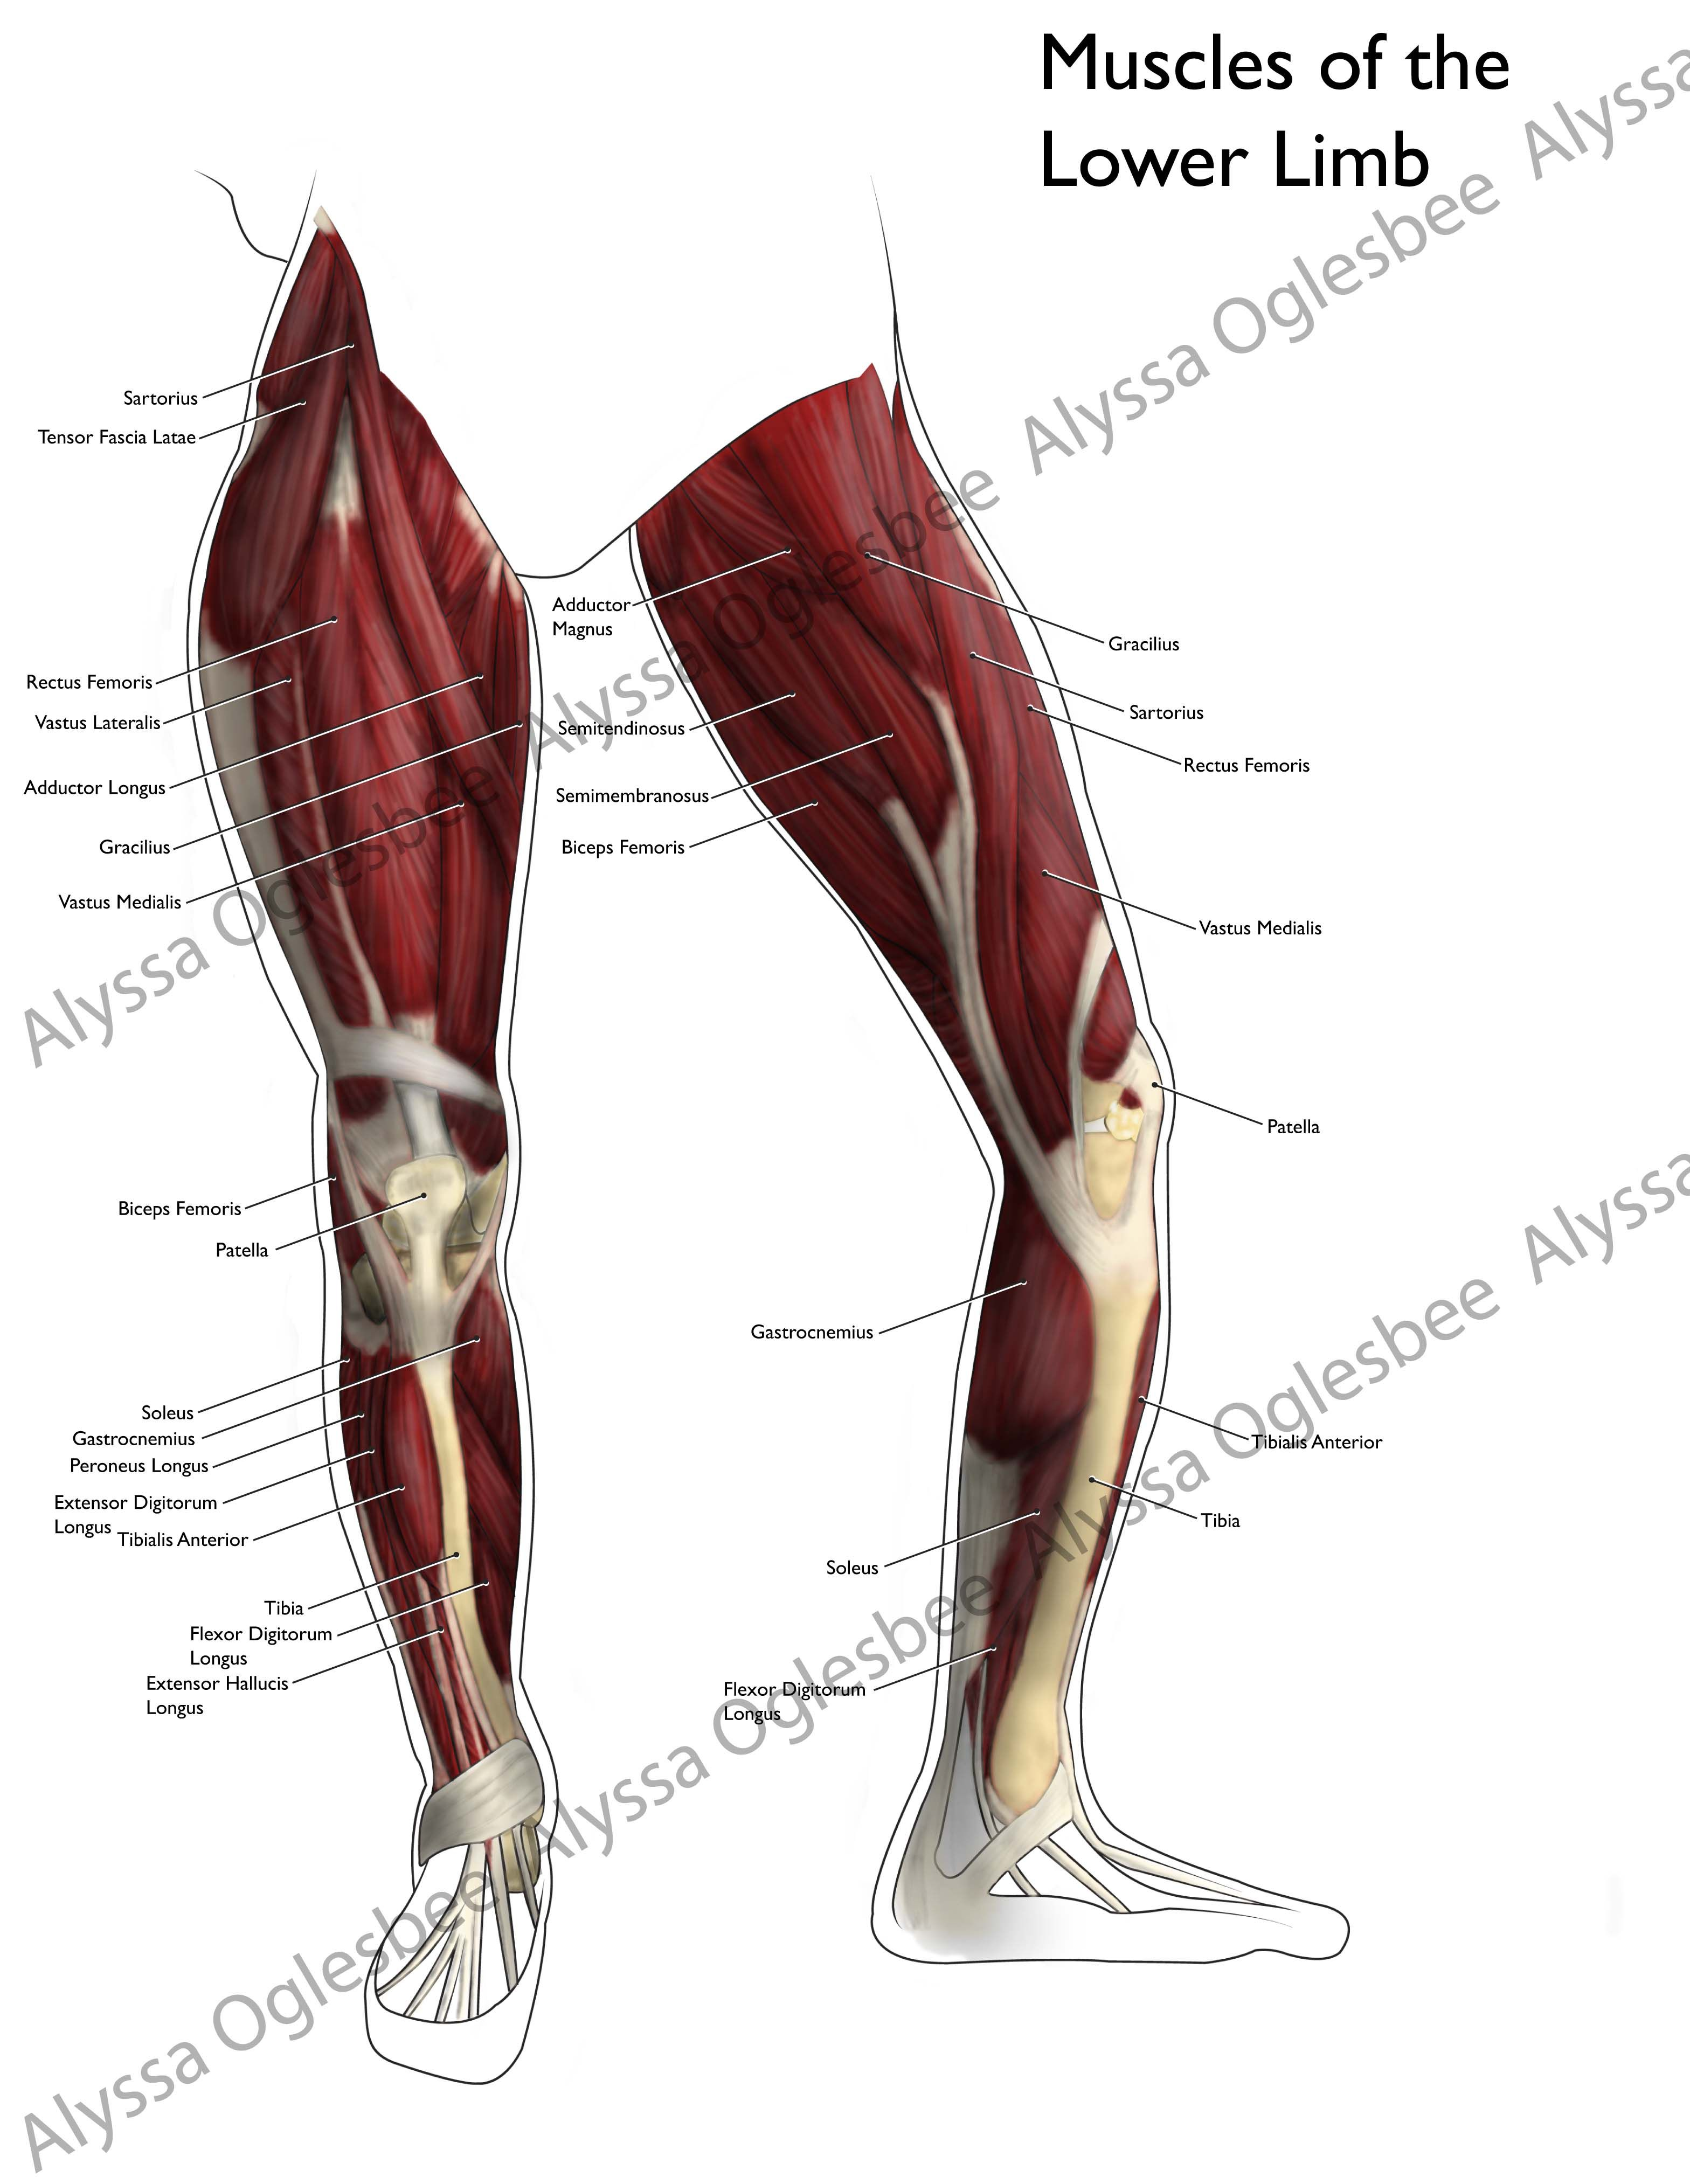 Muscles Of The Lower Limb Muscles Of The Lower Limb Myfolio Feet